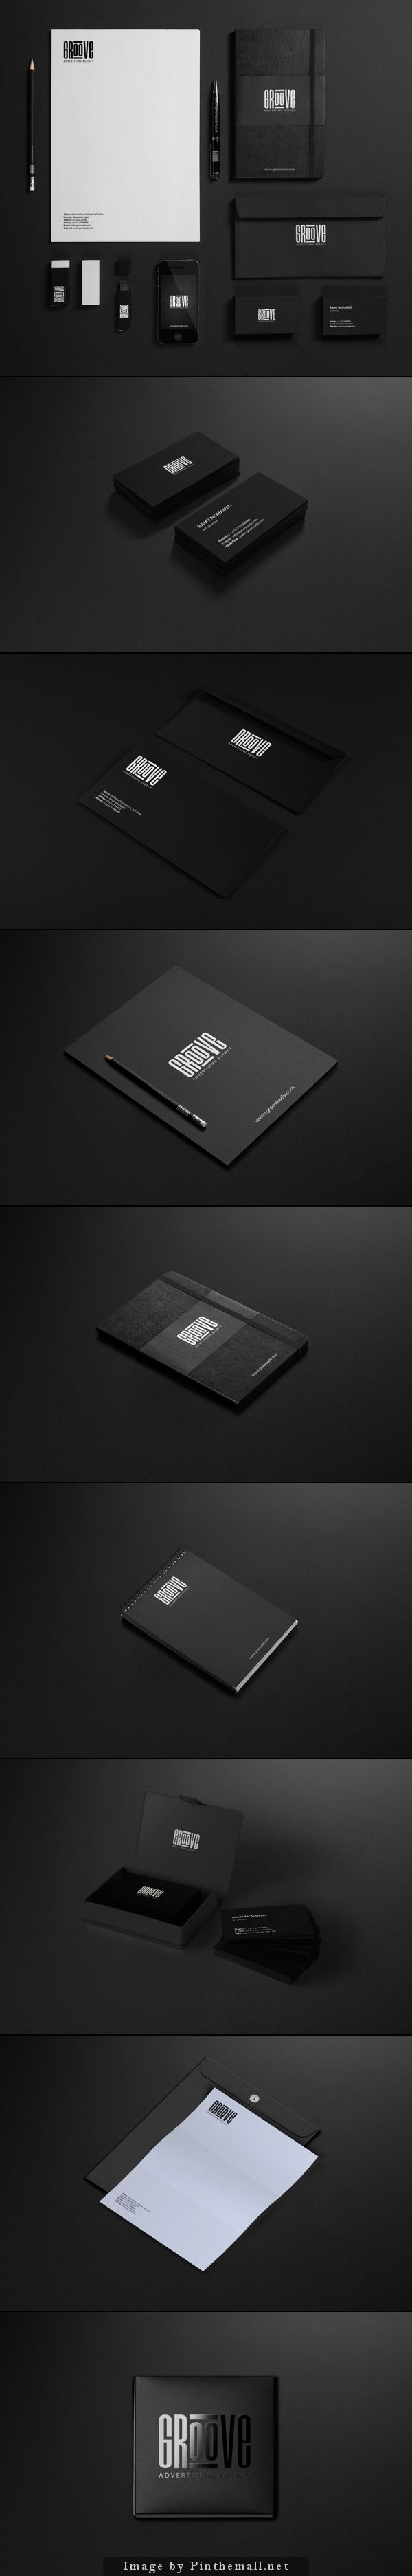 corporate identity branding logo minimal business card letter letterhead packaging wcc sticker brochure label graphic design coated notepad black